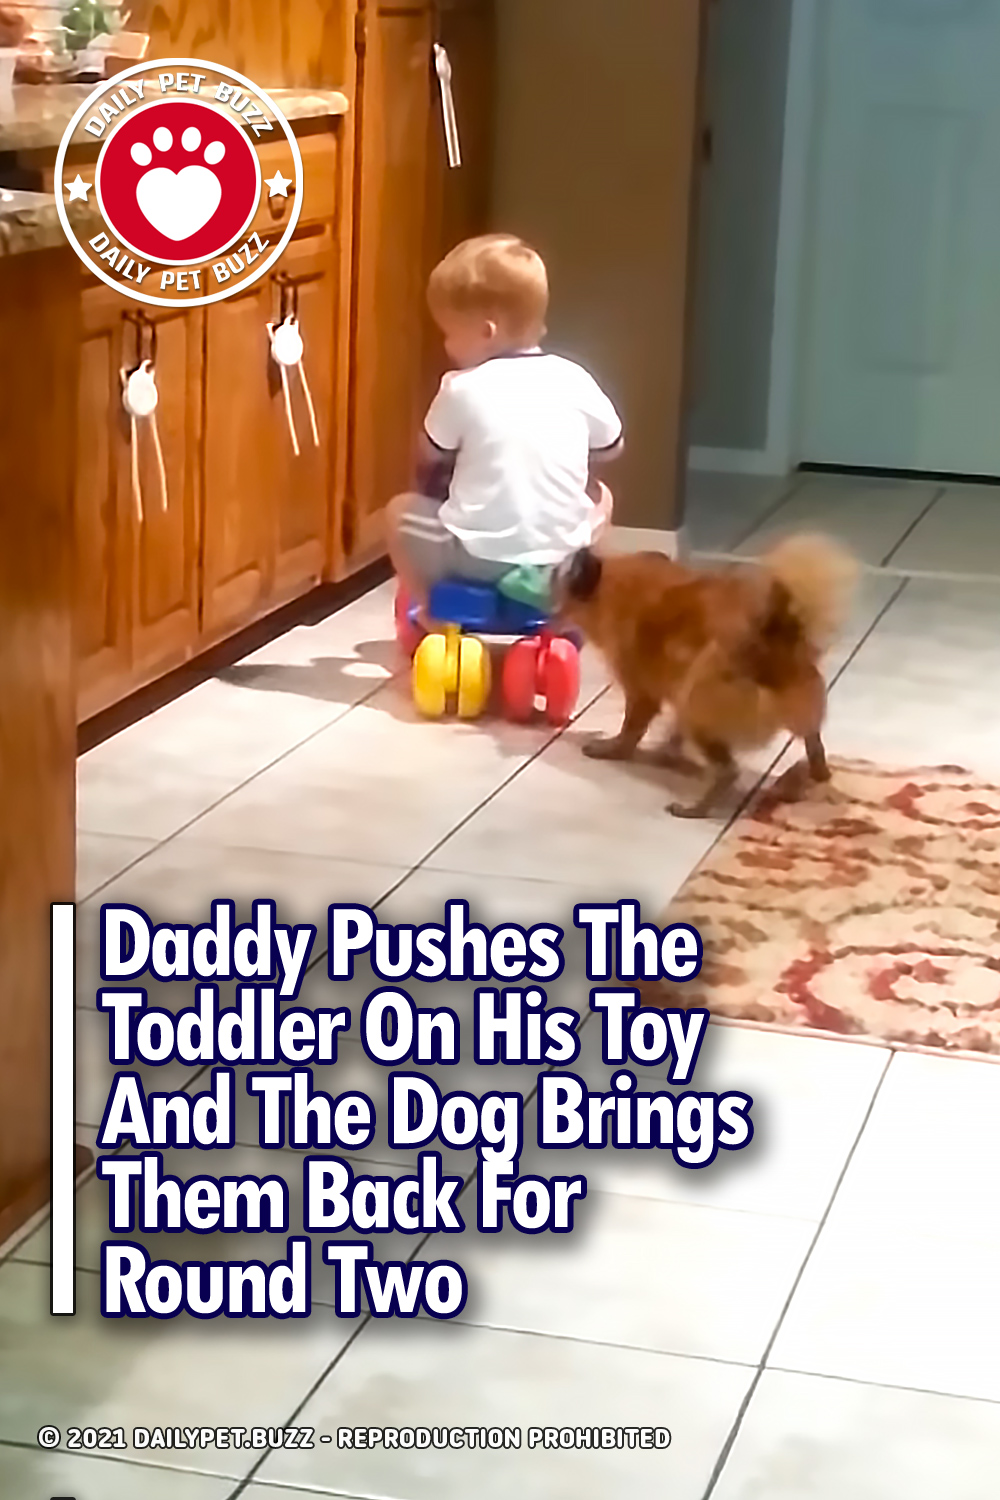 Daddy Pushes The Toddler On His Toy And The Dog Brings Them Back For Round Two